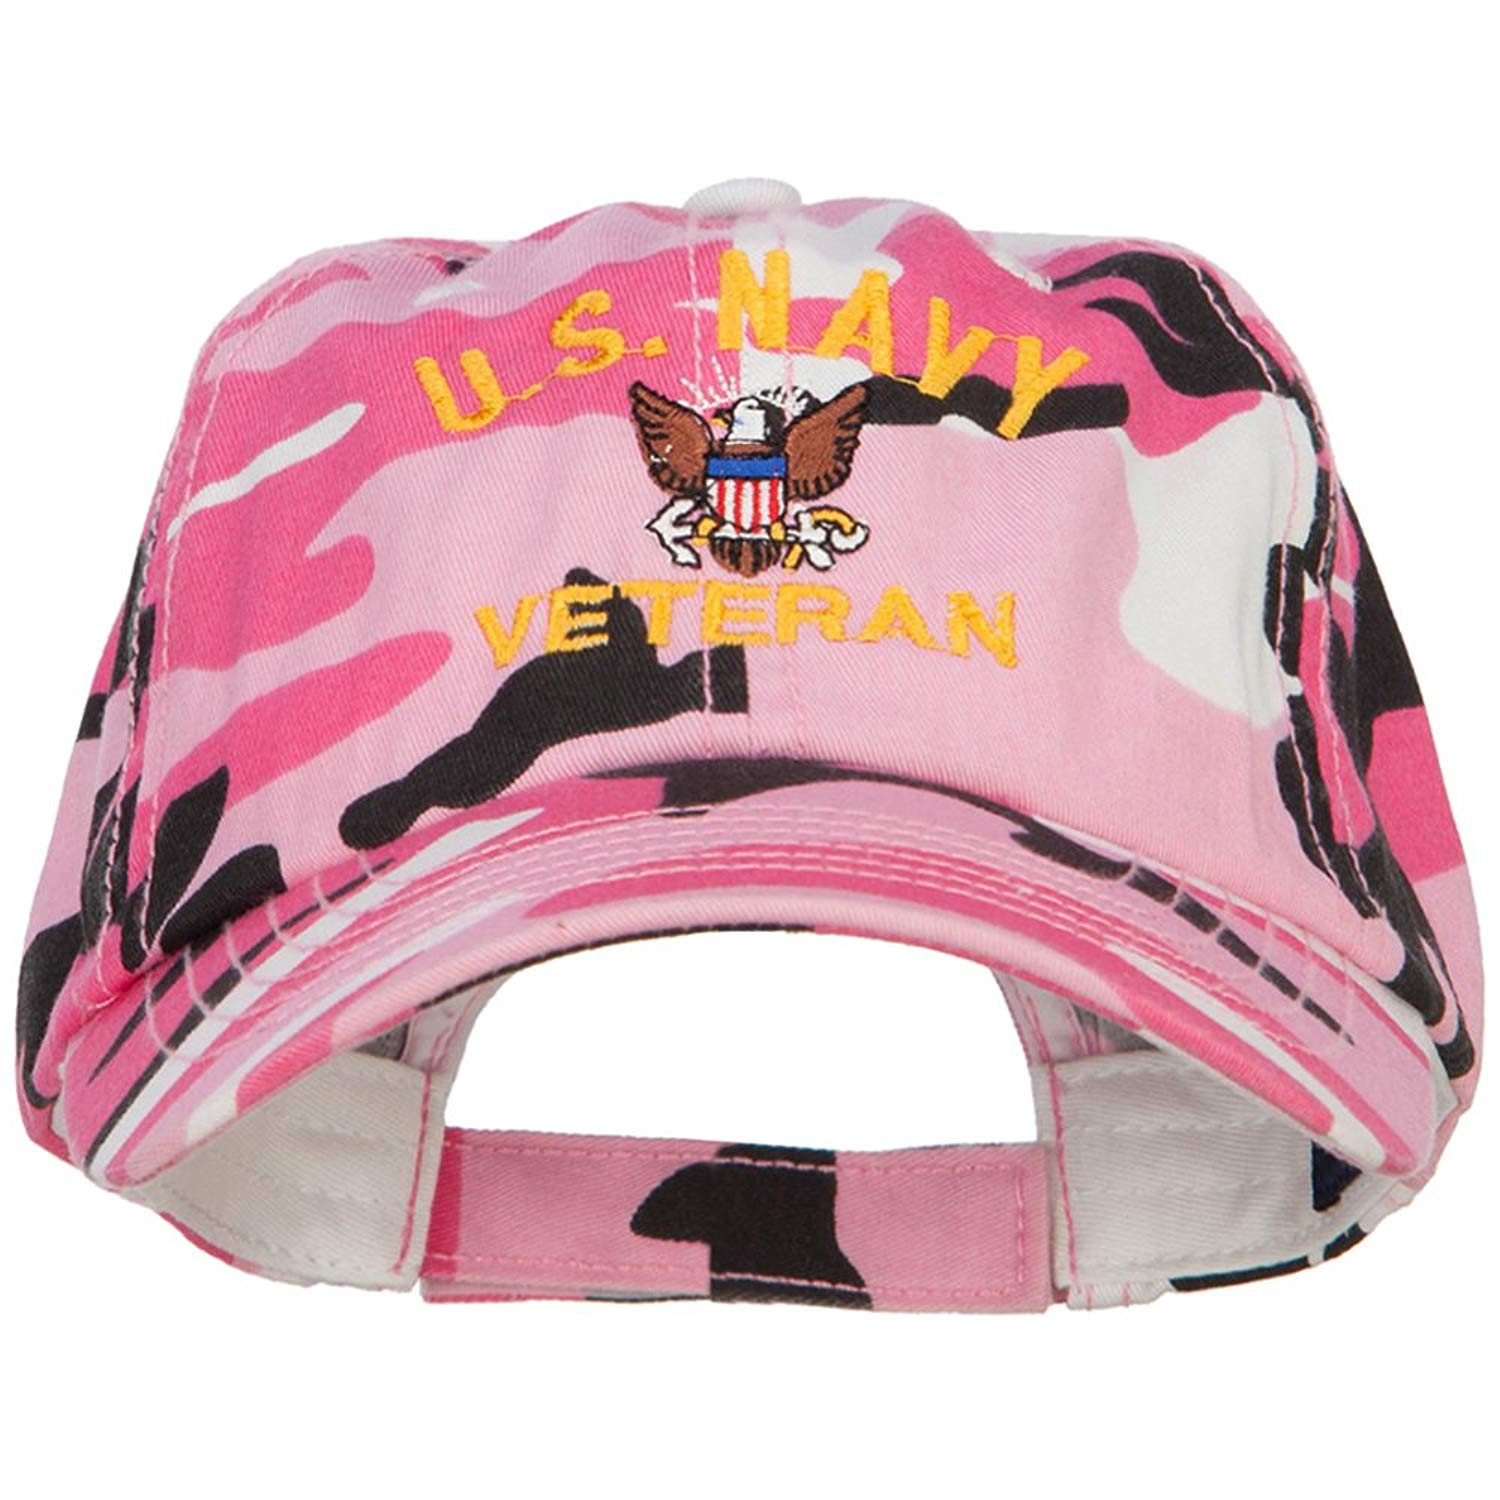 72b6a302e61a0 Get Quotations · E4hats US Navy Veteran Military Embroidered Enzyme Camo Cap